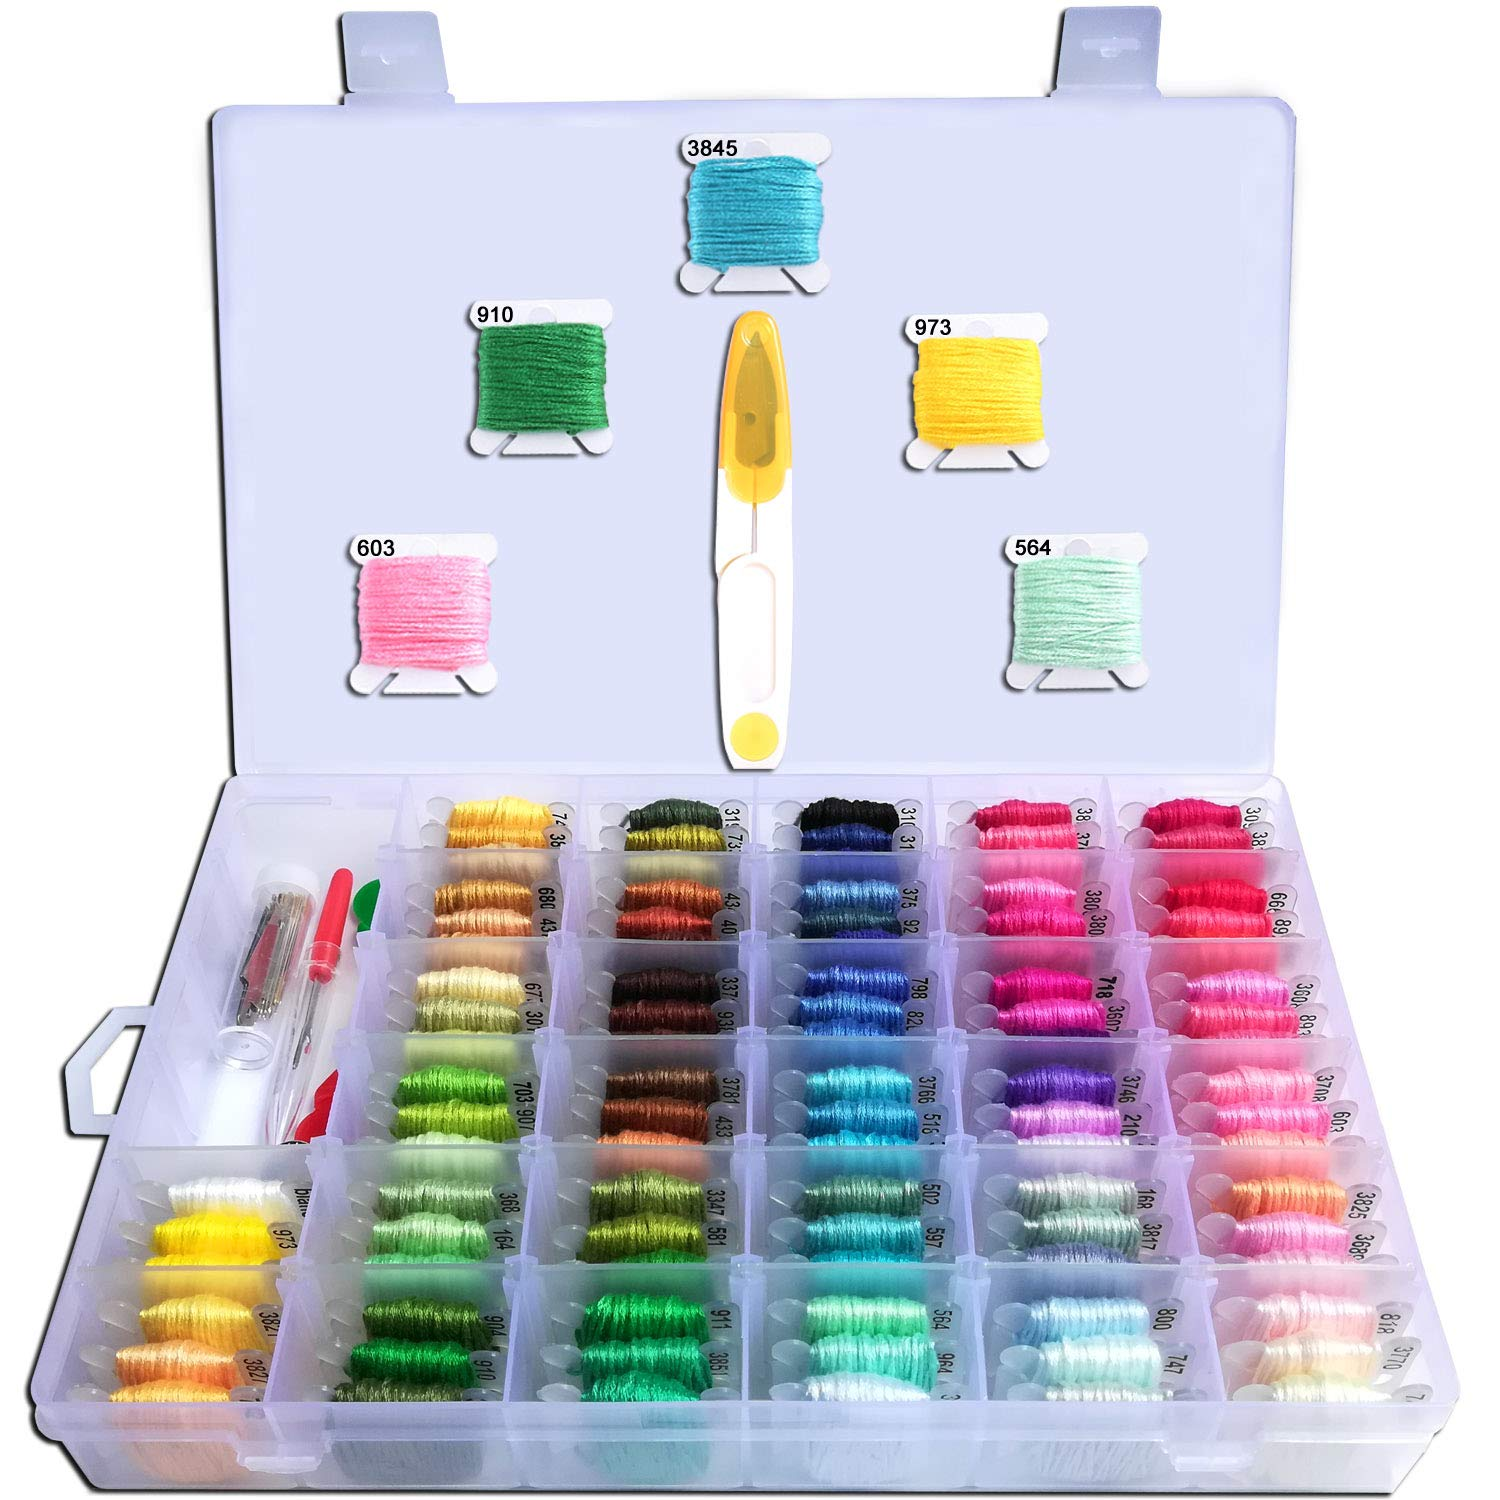 Embroidery Floss with Organizer-HoneForest 96 Colors Pre-Wound Embroidery Thread Bobbins with Color Numbers and 38 pcs Cross Stitch Kits, Perfect for DIY Friendship Bracelet String, Handcrafts, etc